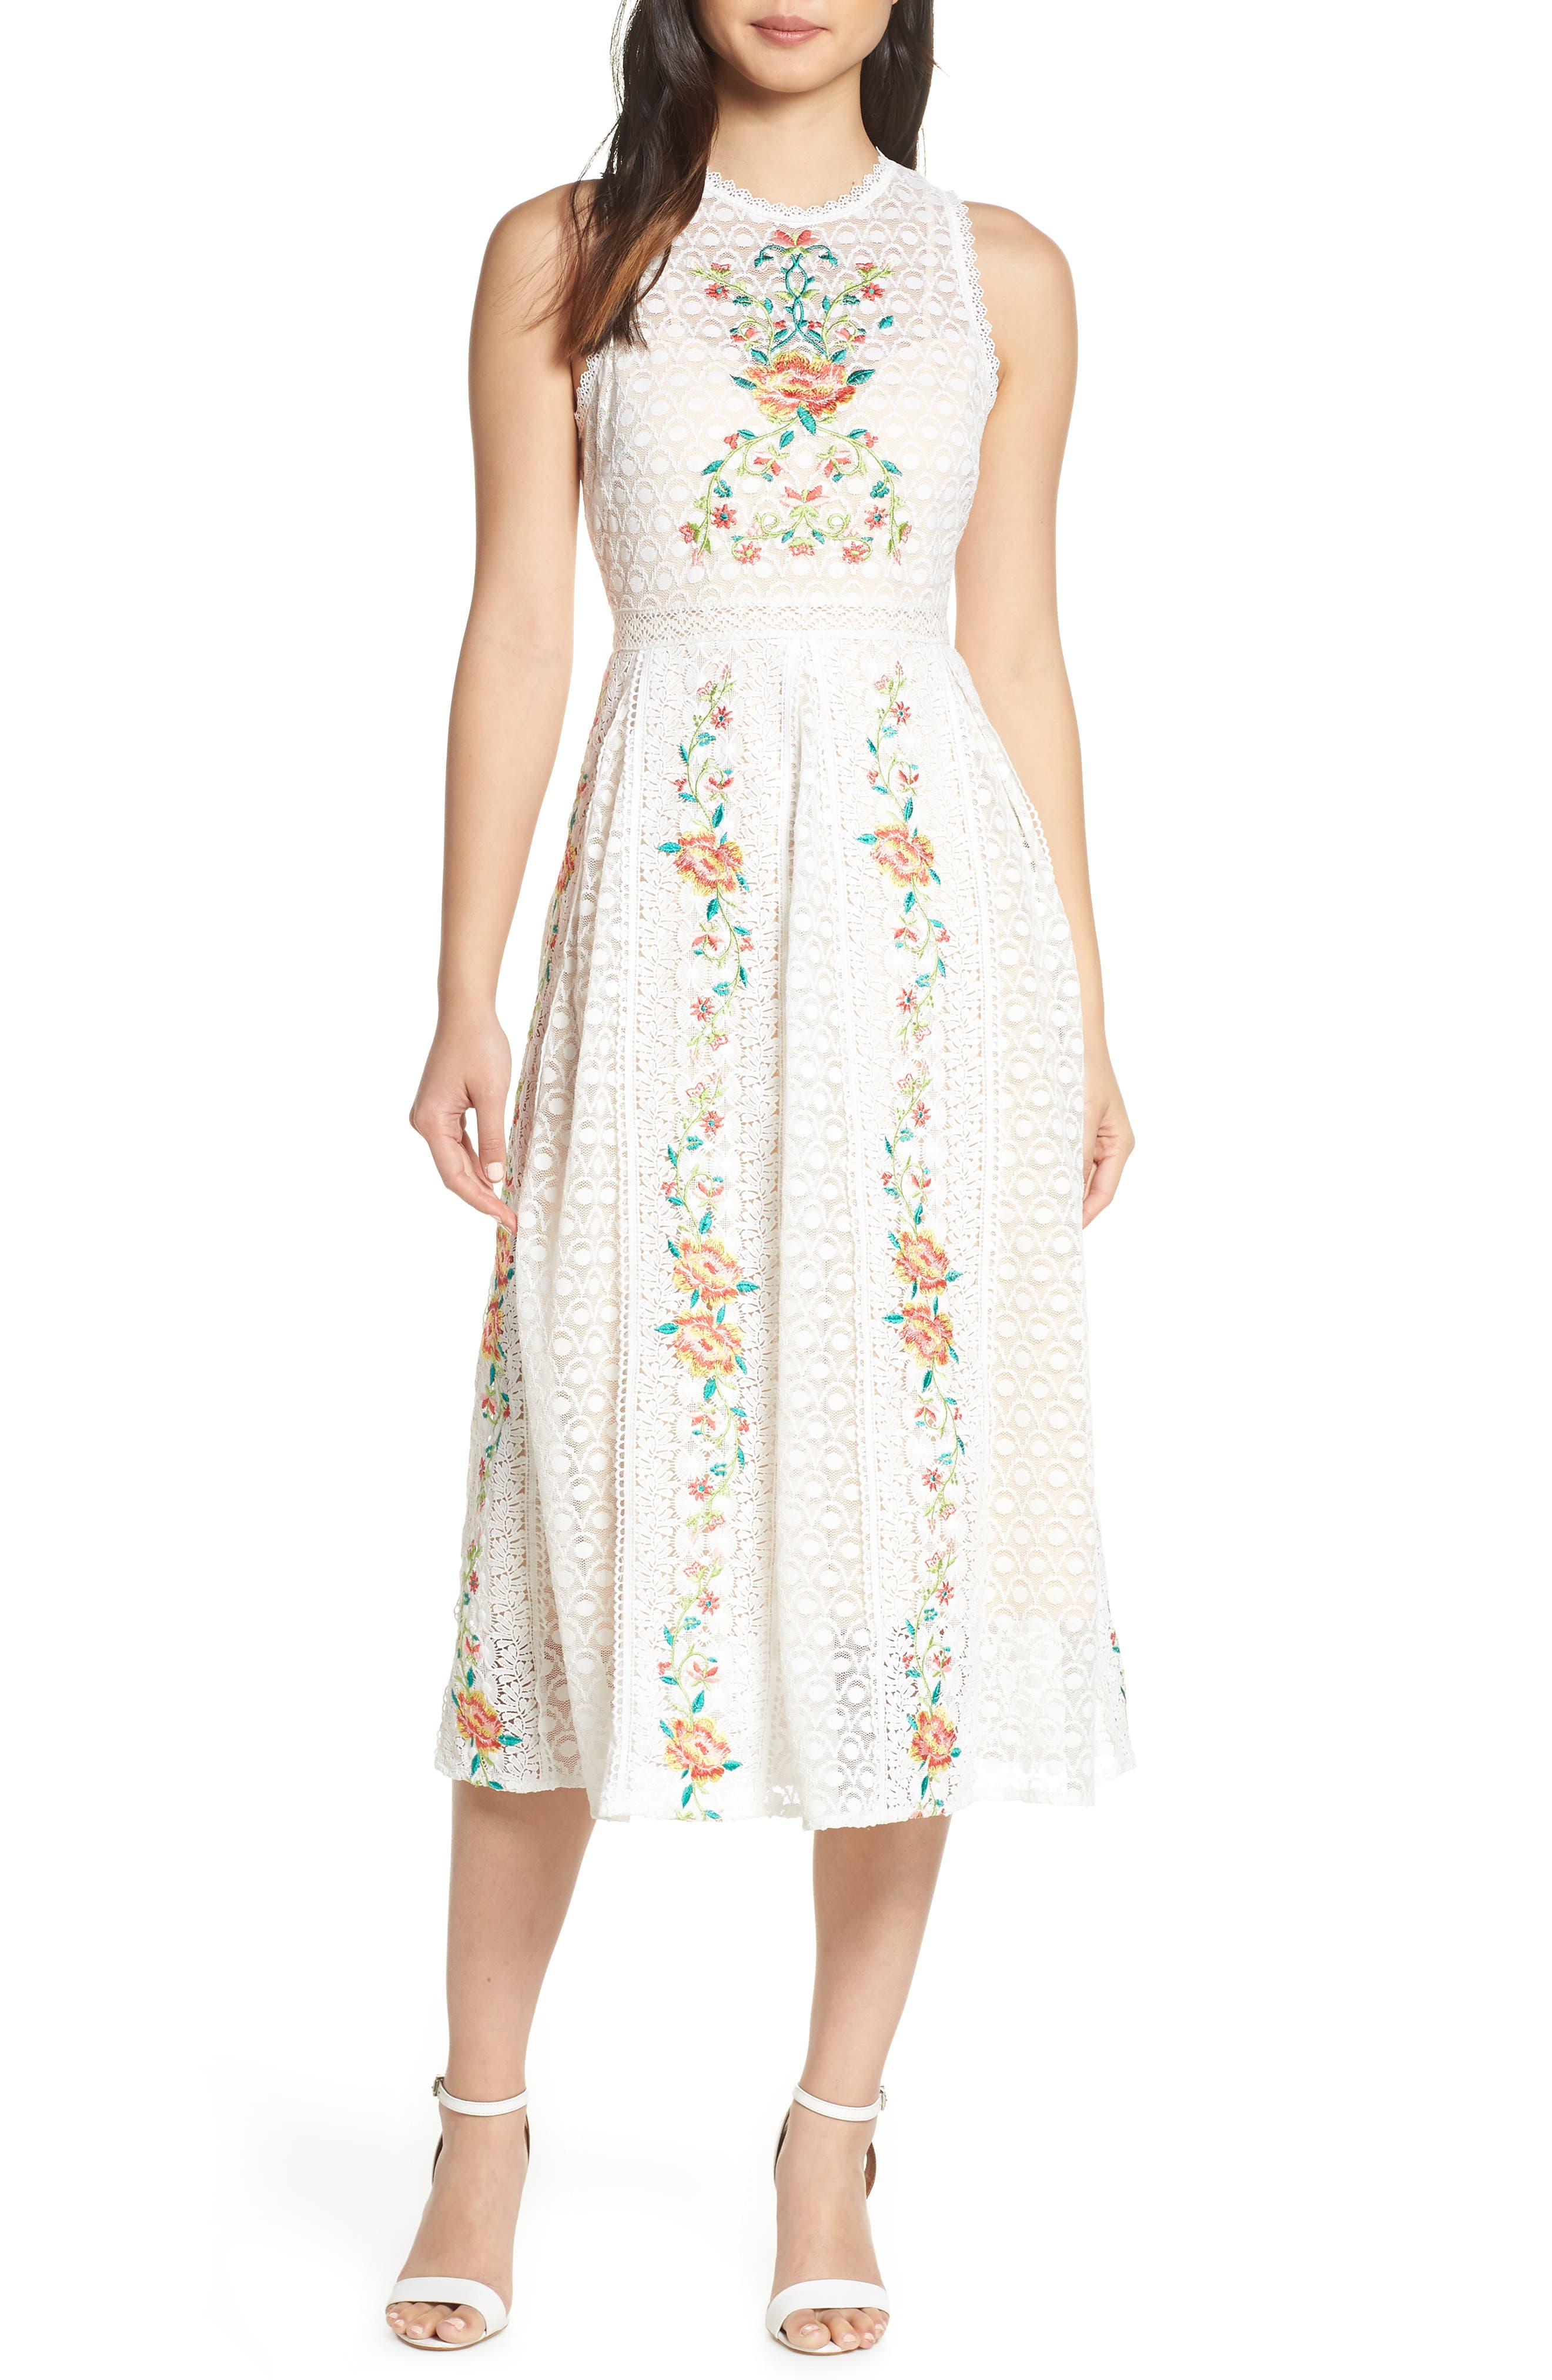 Vintage Inspired Wedding Dress | Vintage Style Wedding Dresses Womens Foxiedox Lori Embroidered Lace Midi Dress Size Large - Ivory $216.00 AT vintagedancer.com